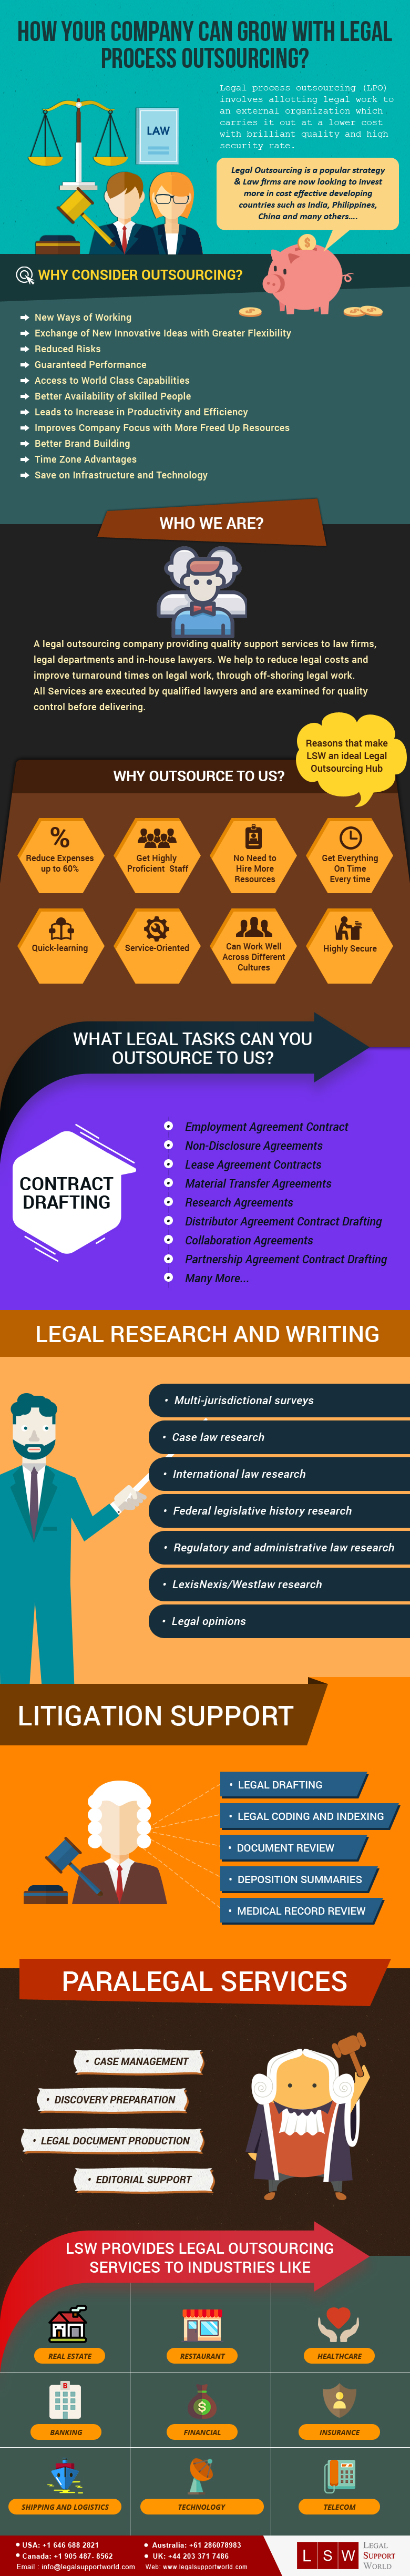 Legal Process Outsourcing Providers